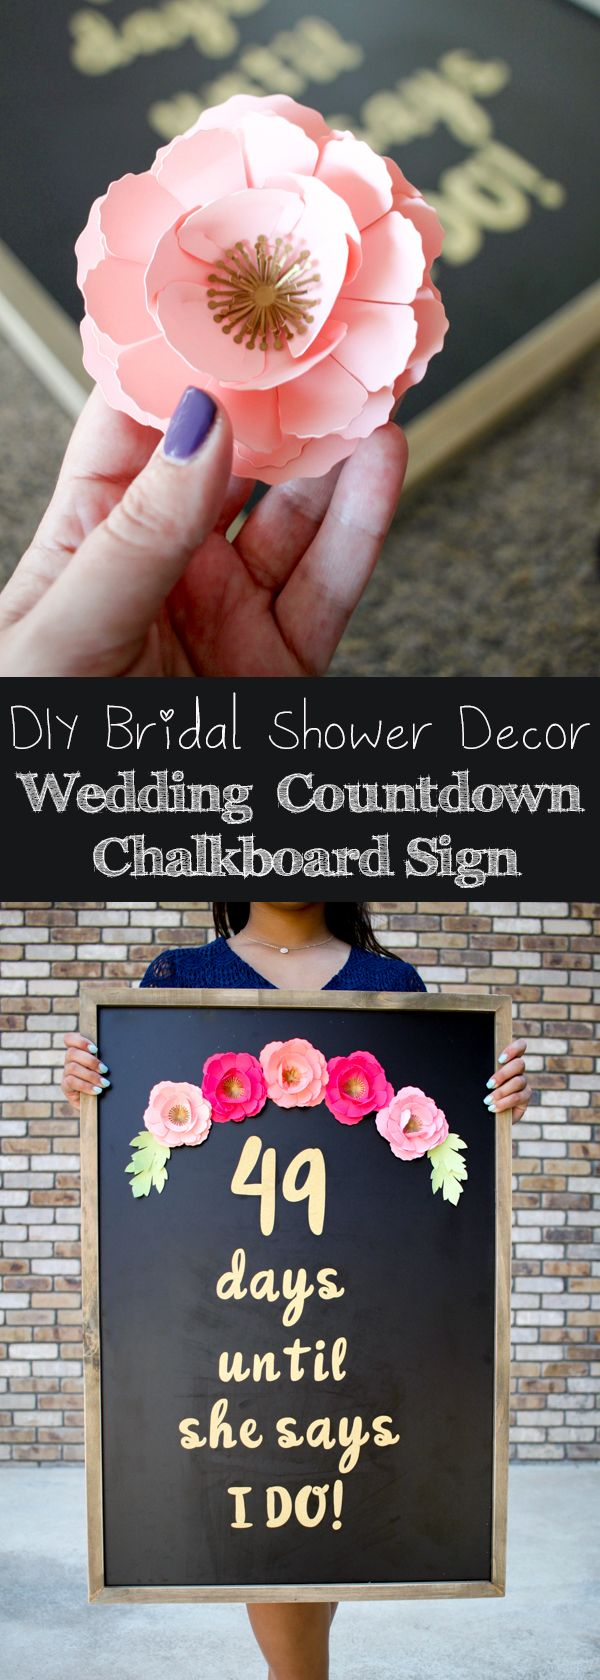 DIY Bridal Shower Decor with Cricut - Wedding Day Countdown Chalkboard Sign @Cricut #mycricutstory